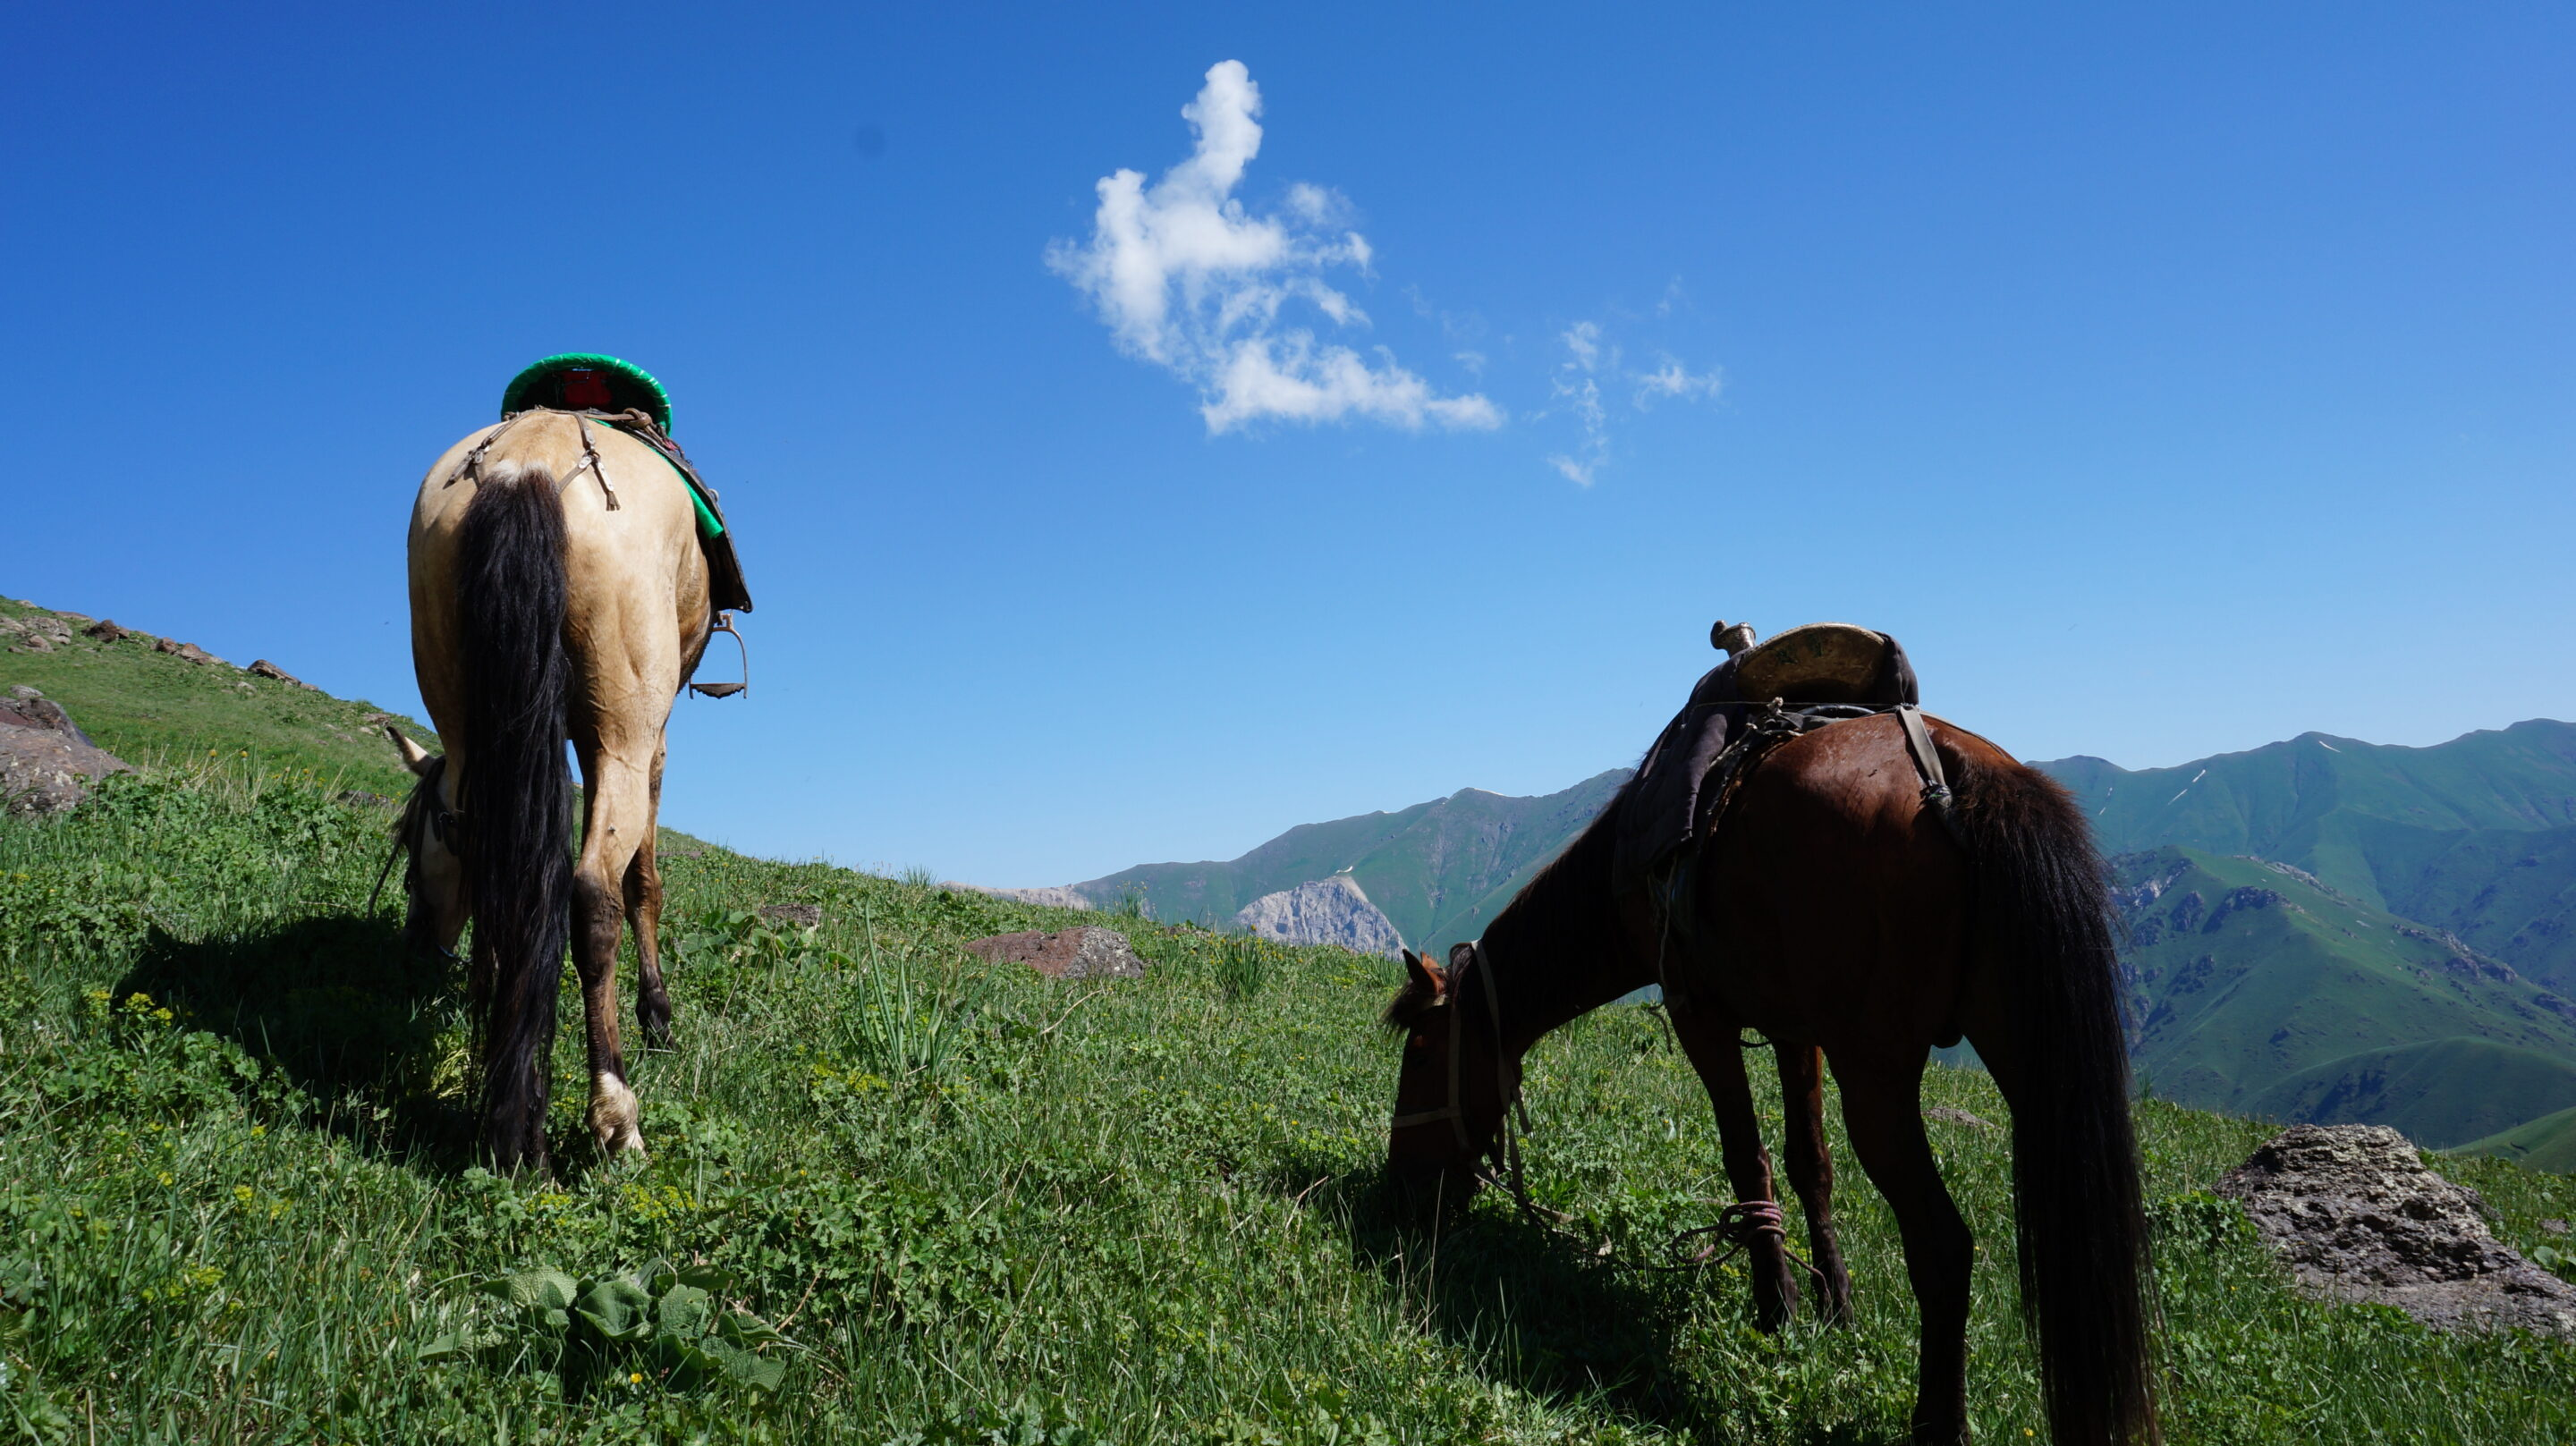 Exploring Mysterious place of Kyrgyzstan 1